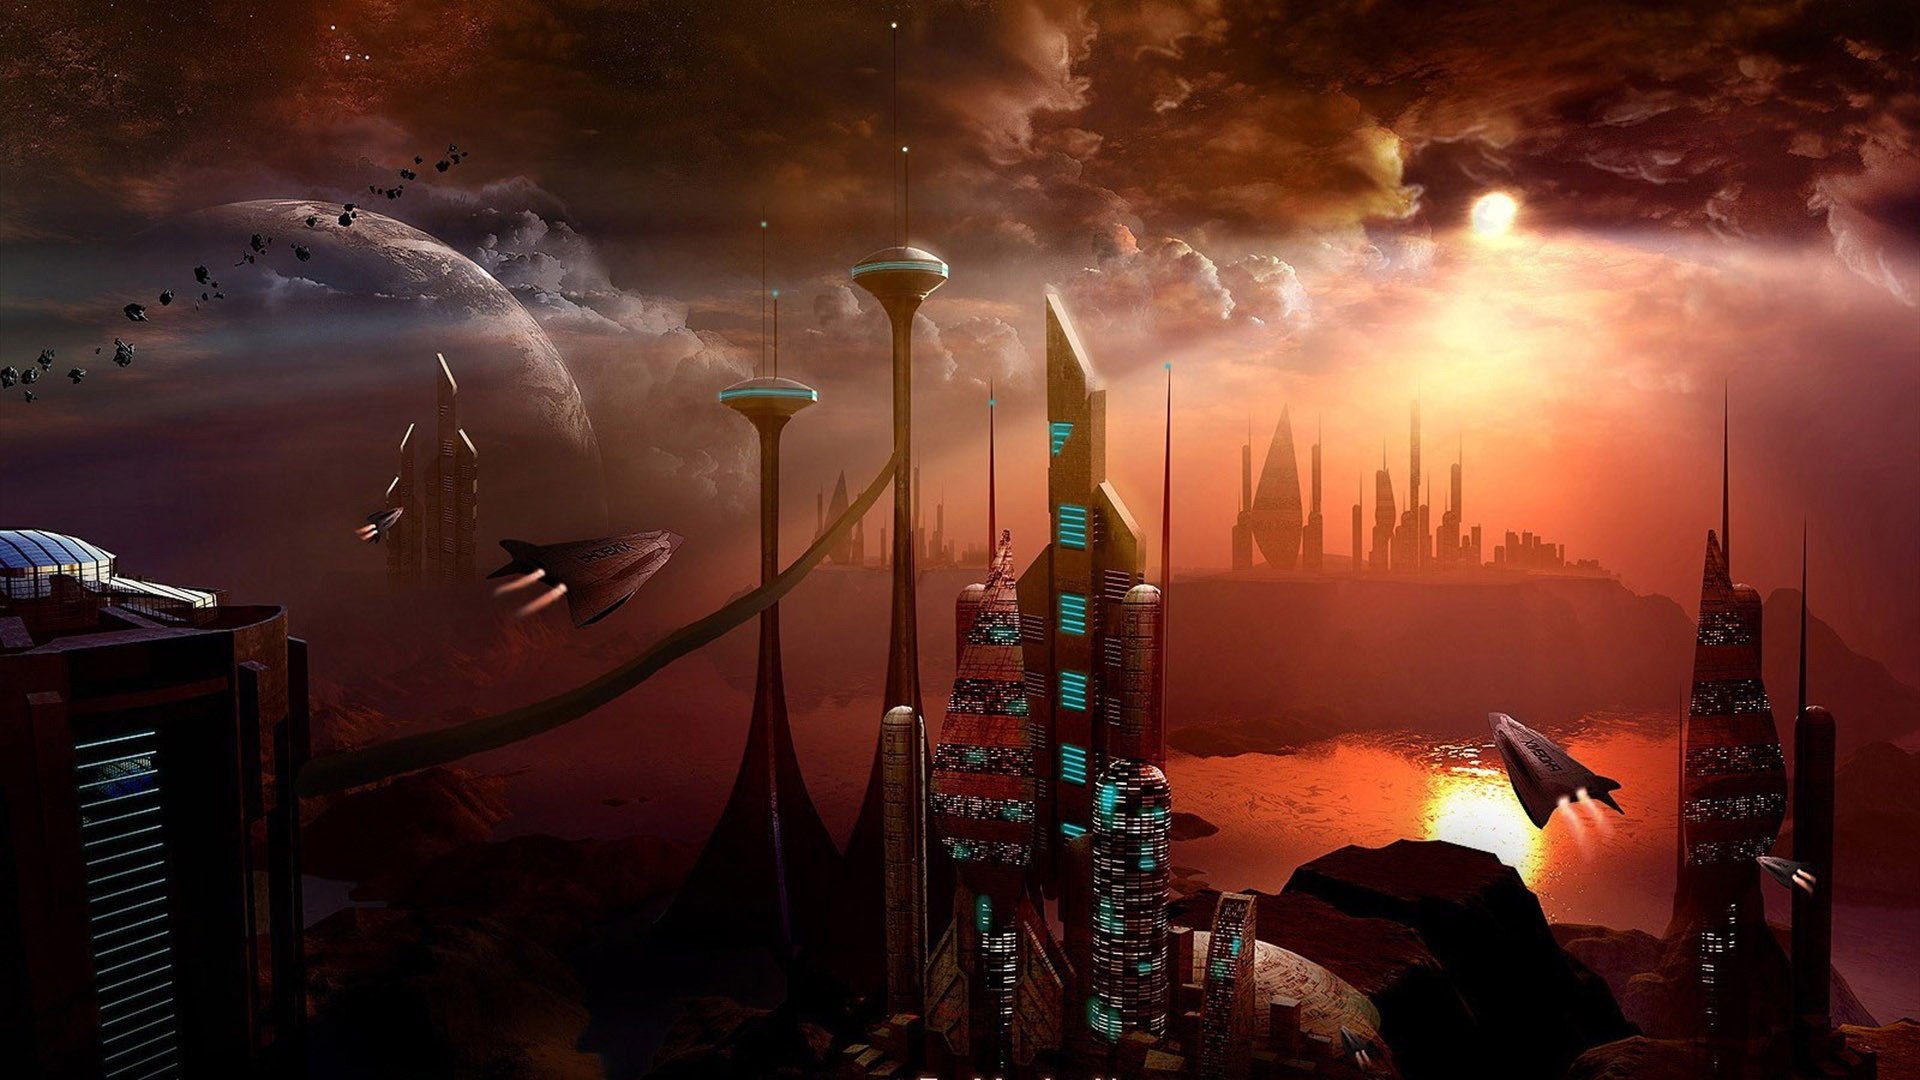 paintings planets and cities - photo #4